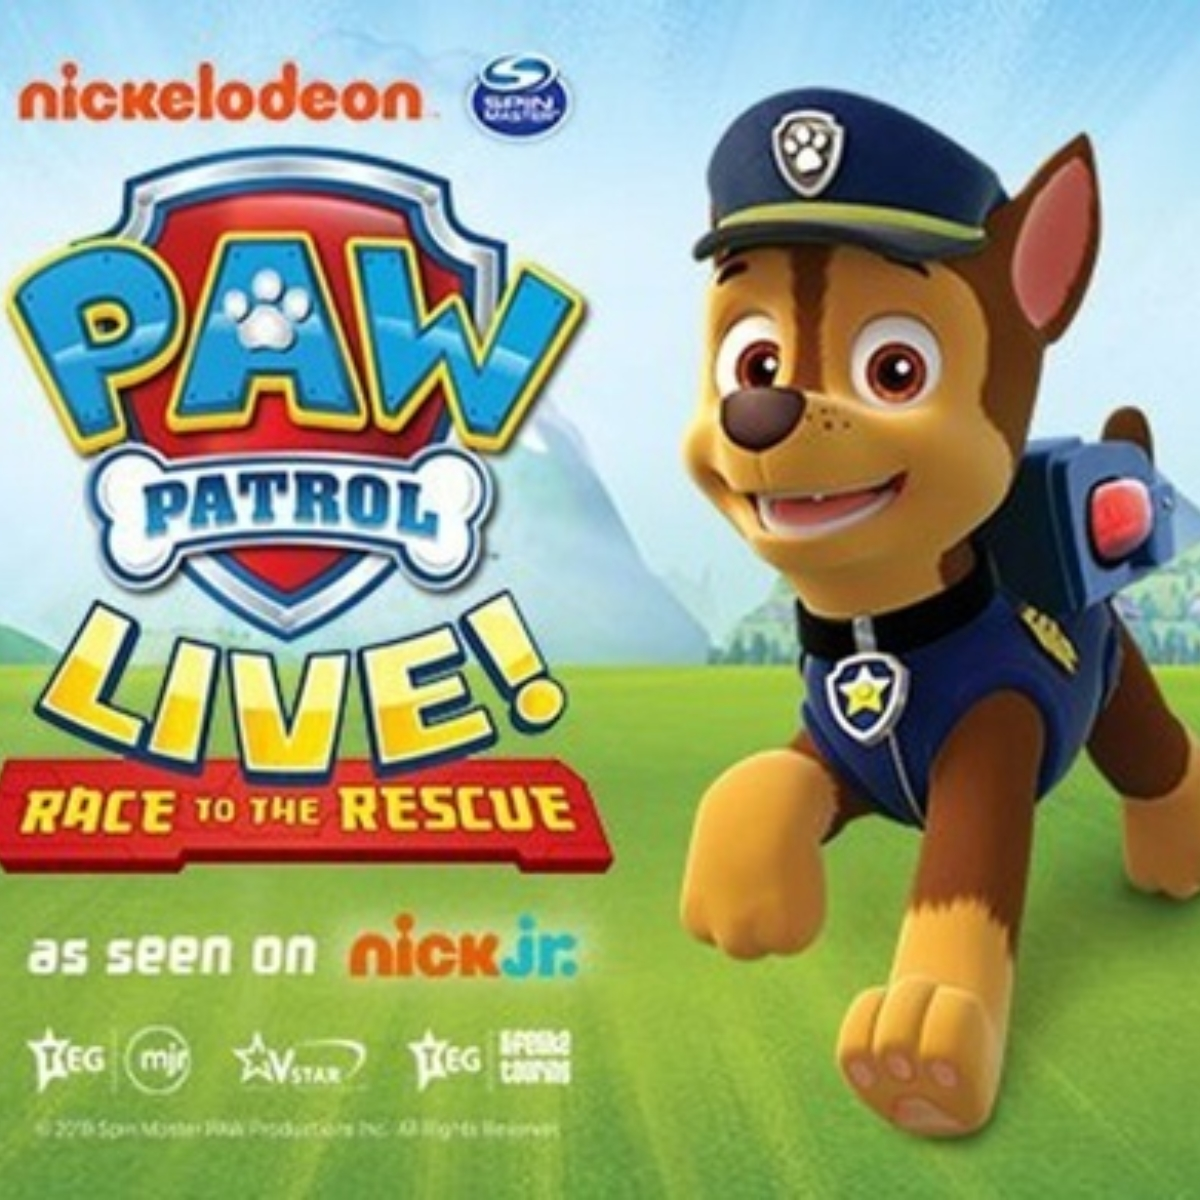 PAW PATROL LIVE! - Race to the Rescue (Glasgow) Images